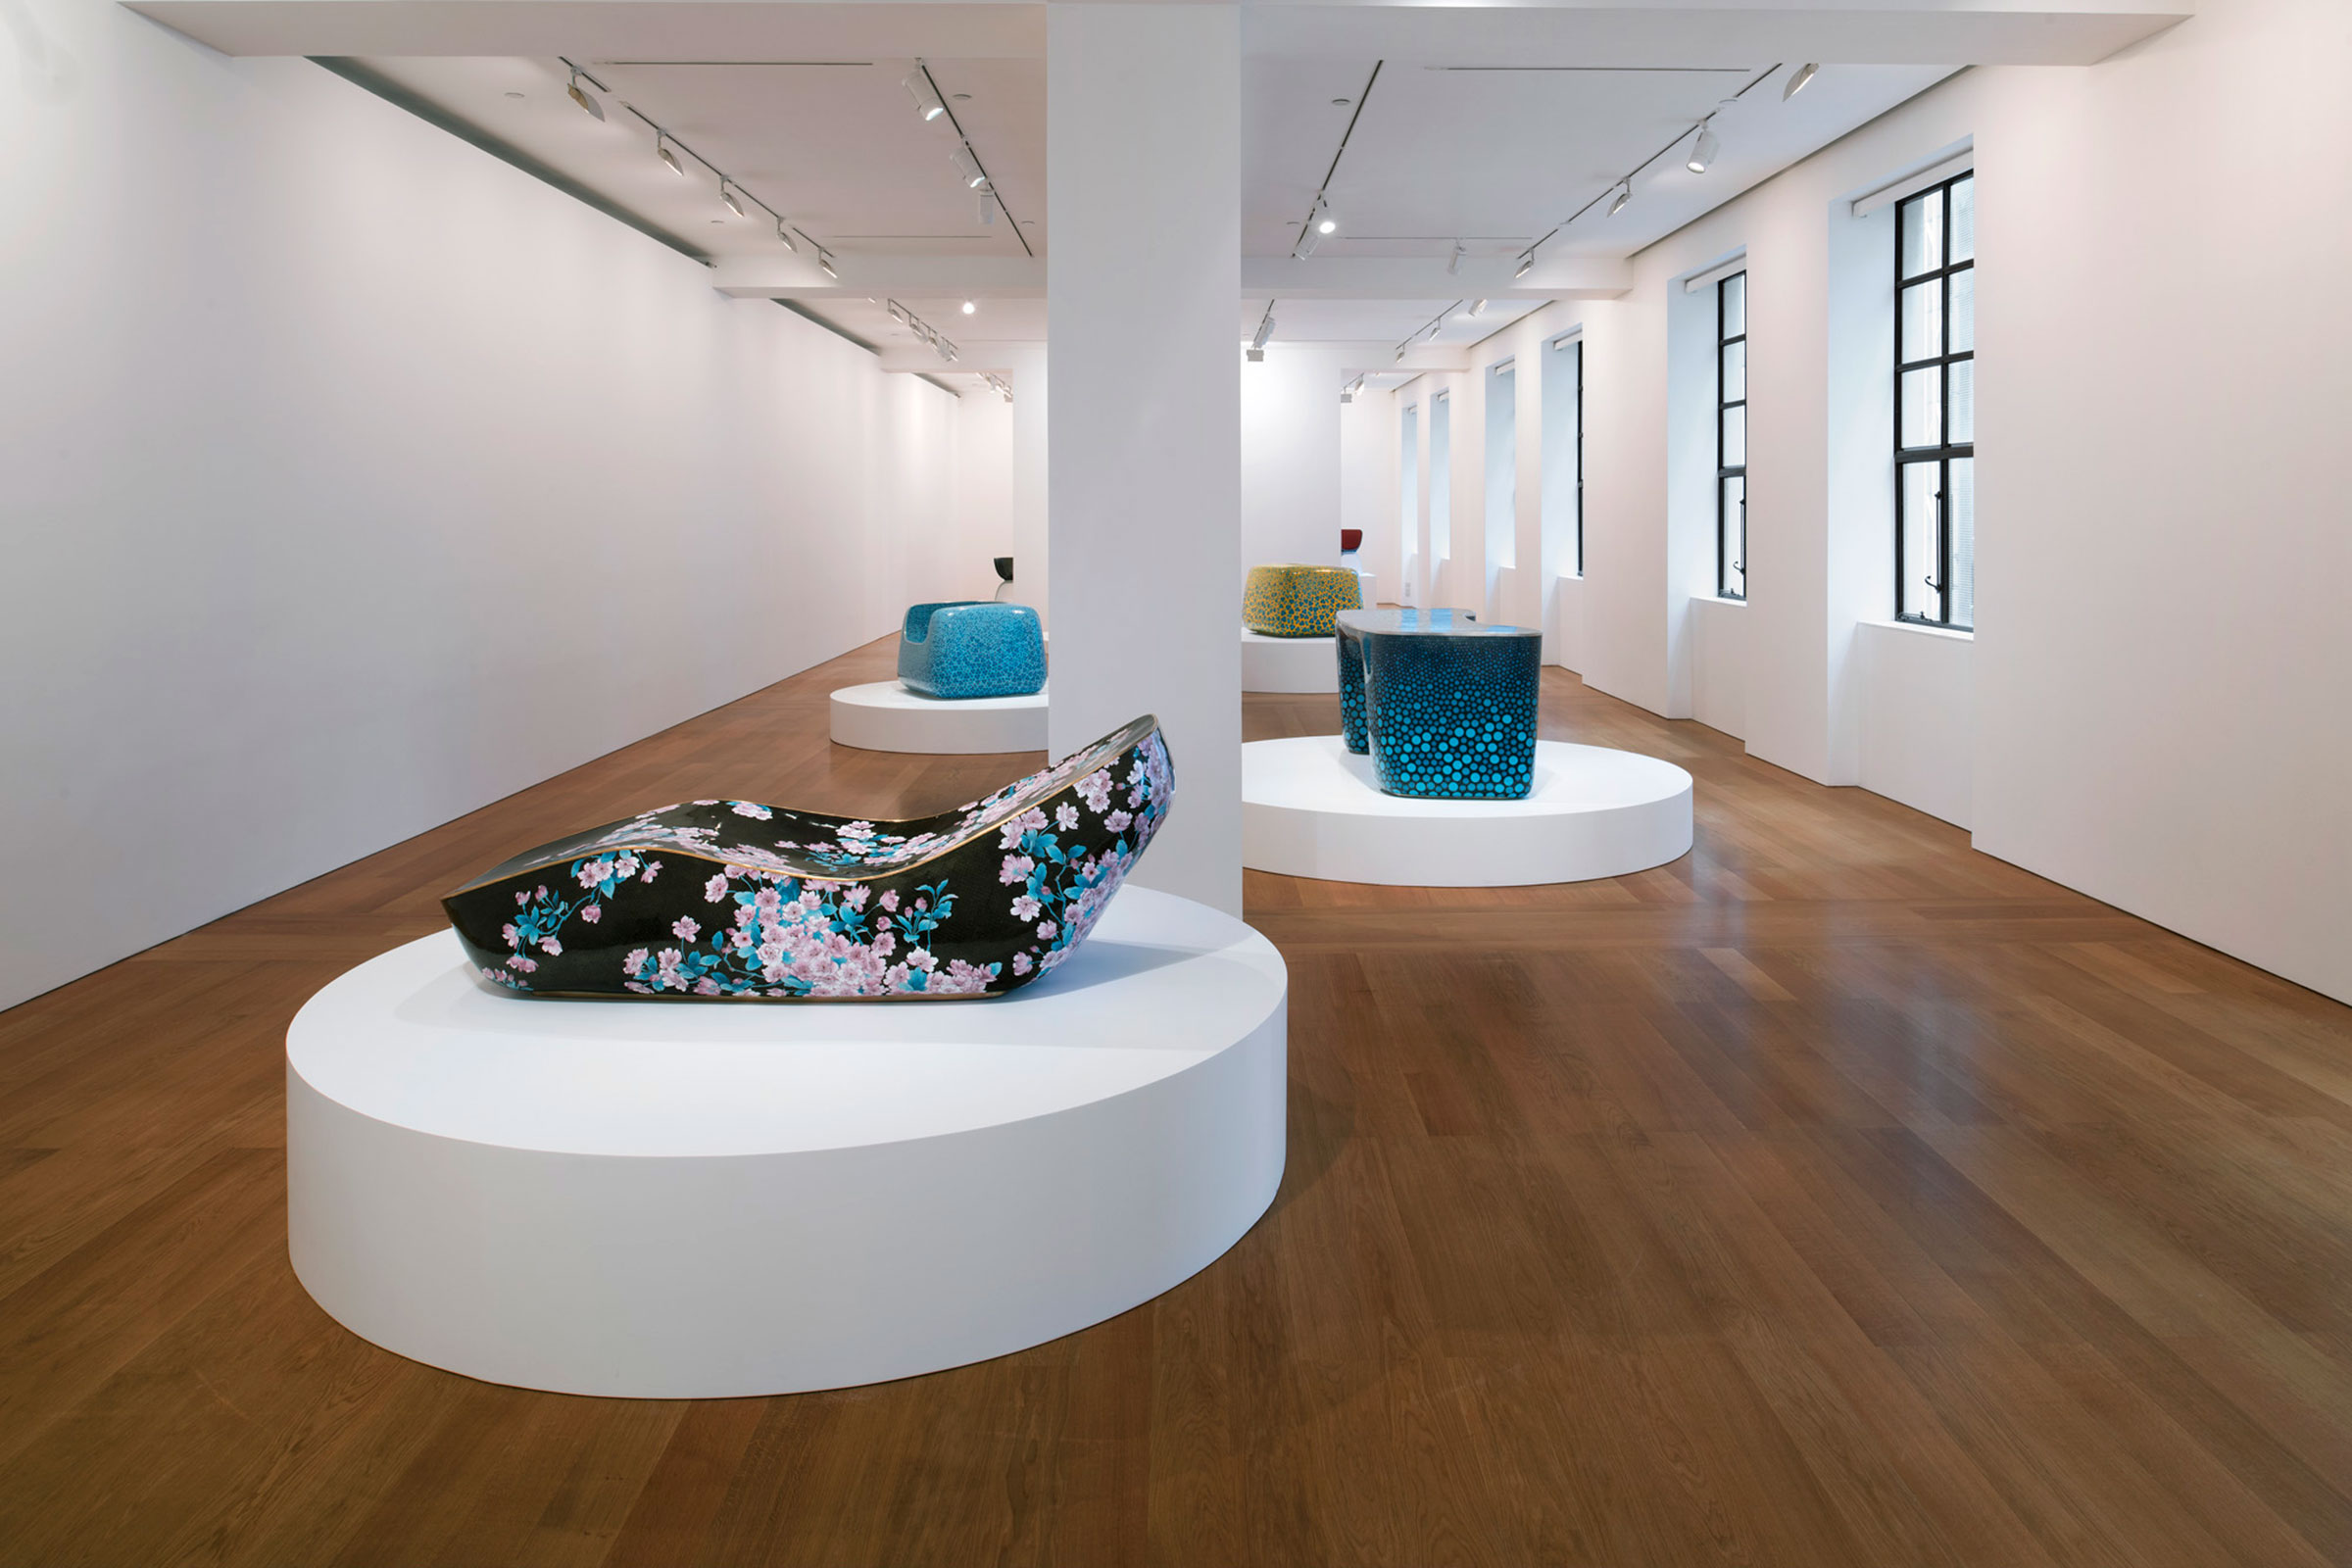 Installation view, Marc Newson at Gagosian Hong Kong, 23 May–27 July, 2019. Image courtesy of Gagosian